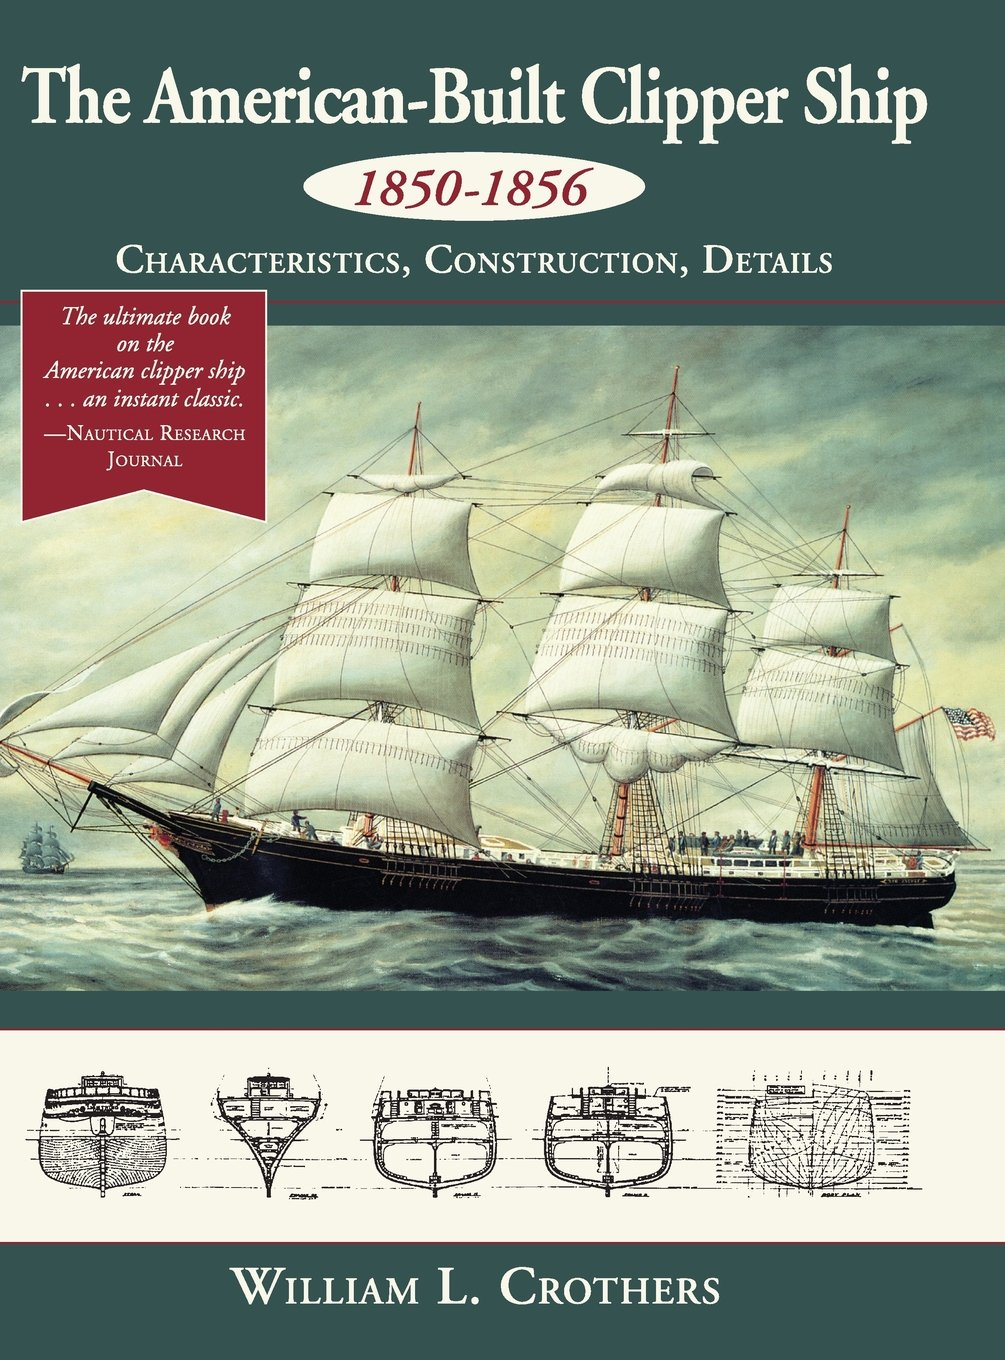 The American Built Clipper Ship 1850 1856 Characteristics Sailing Diagram Tall Ships Pinterest Construction And Details William L Crothers 9781626543393 Books